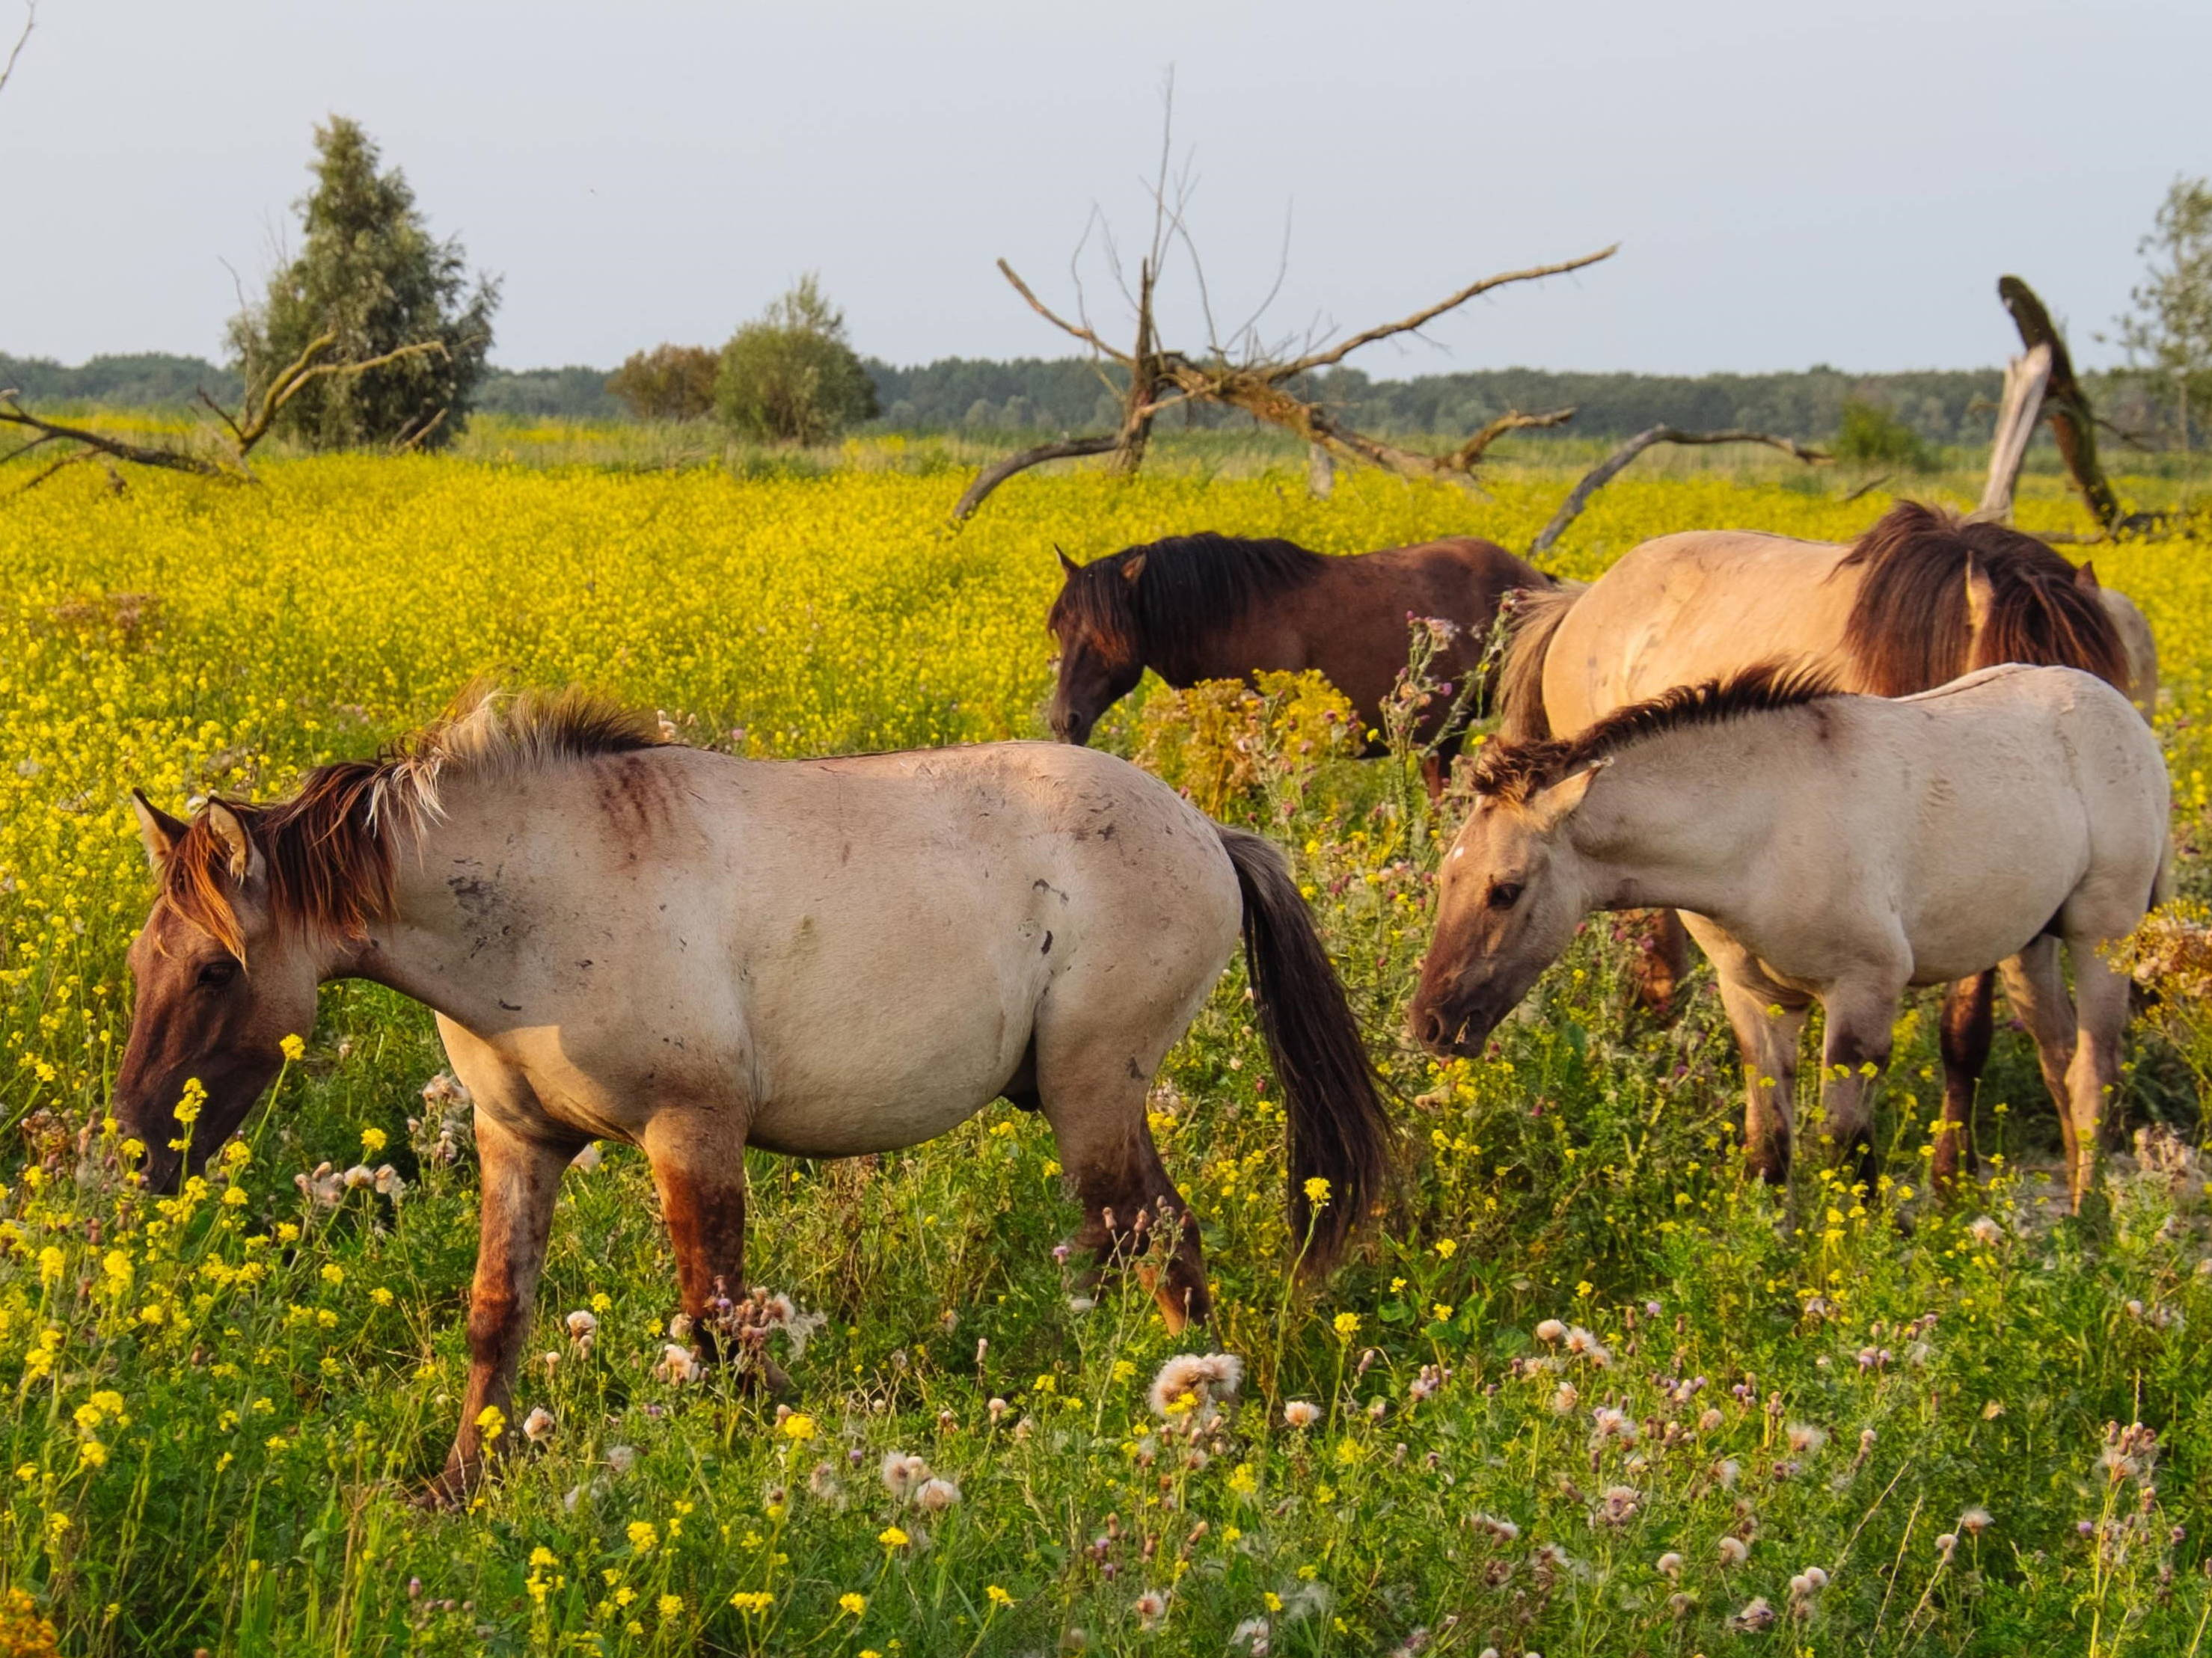 Feral konik horses walk through a field of wildflowers at golden hour